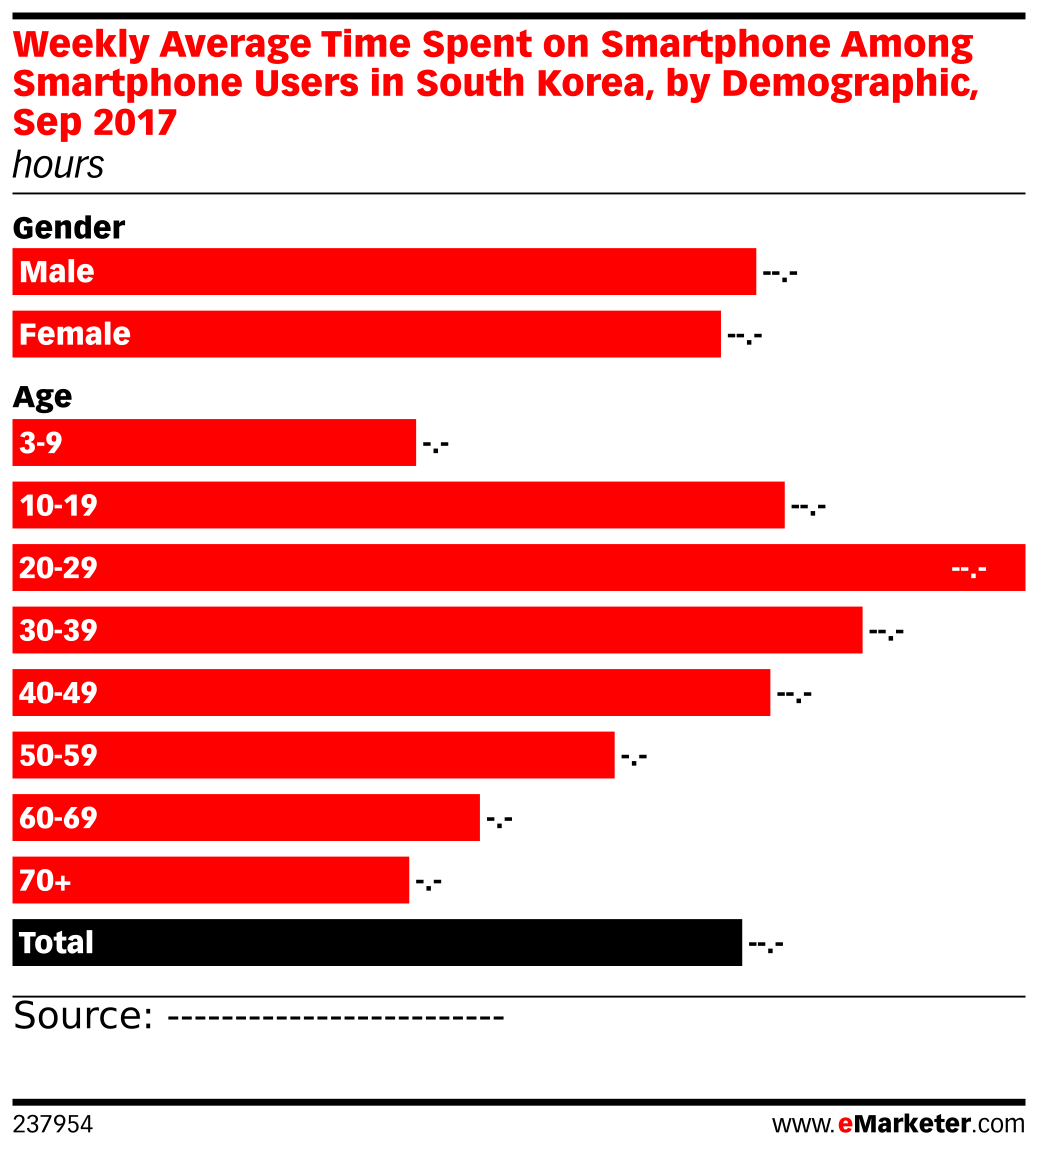 Weekly Average Time Spent on Smartphone Among Smartphone Users in South Korea, by Demographic, Sep 2017 (hours)